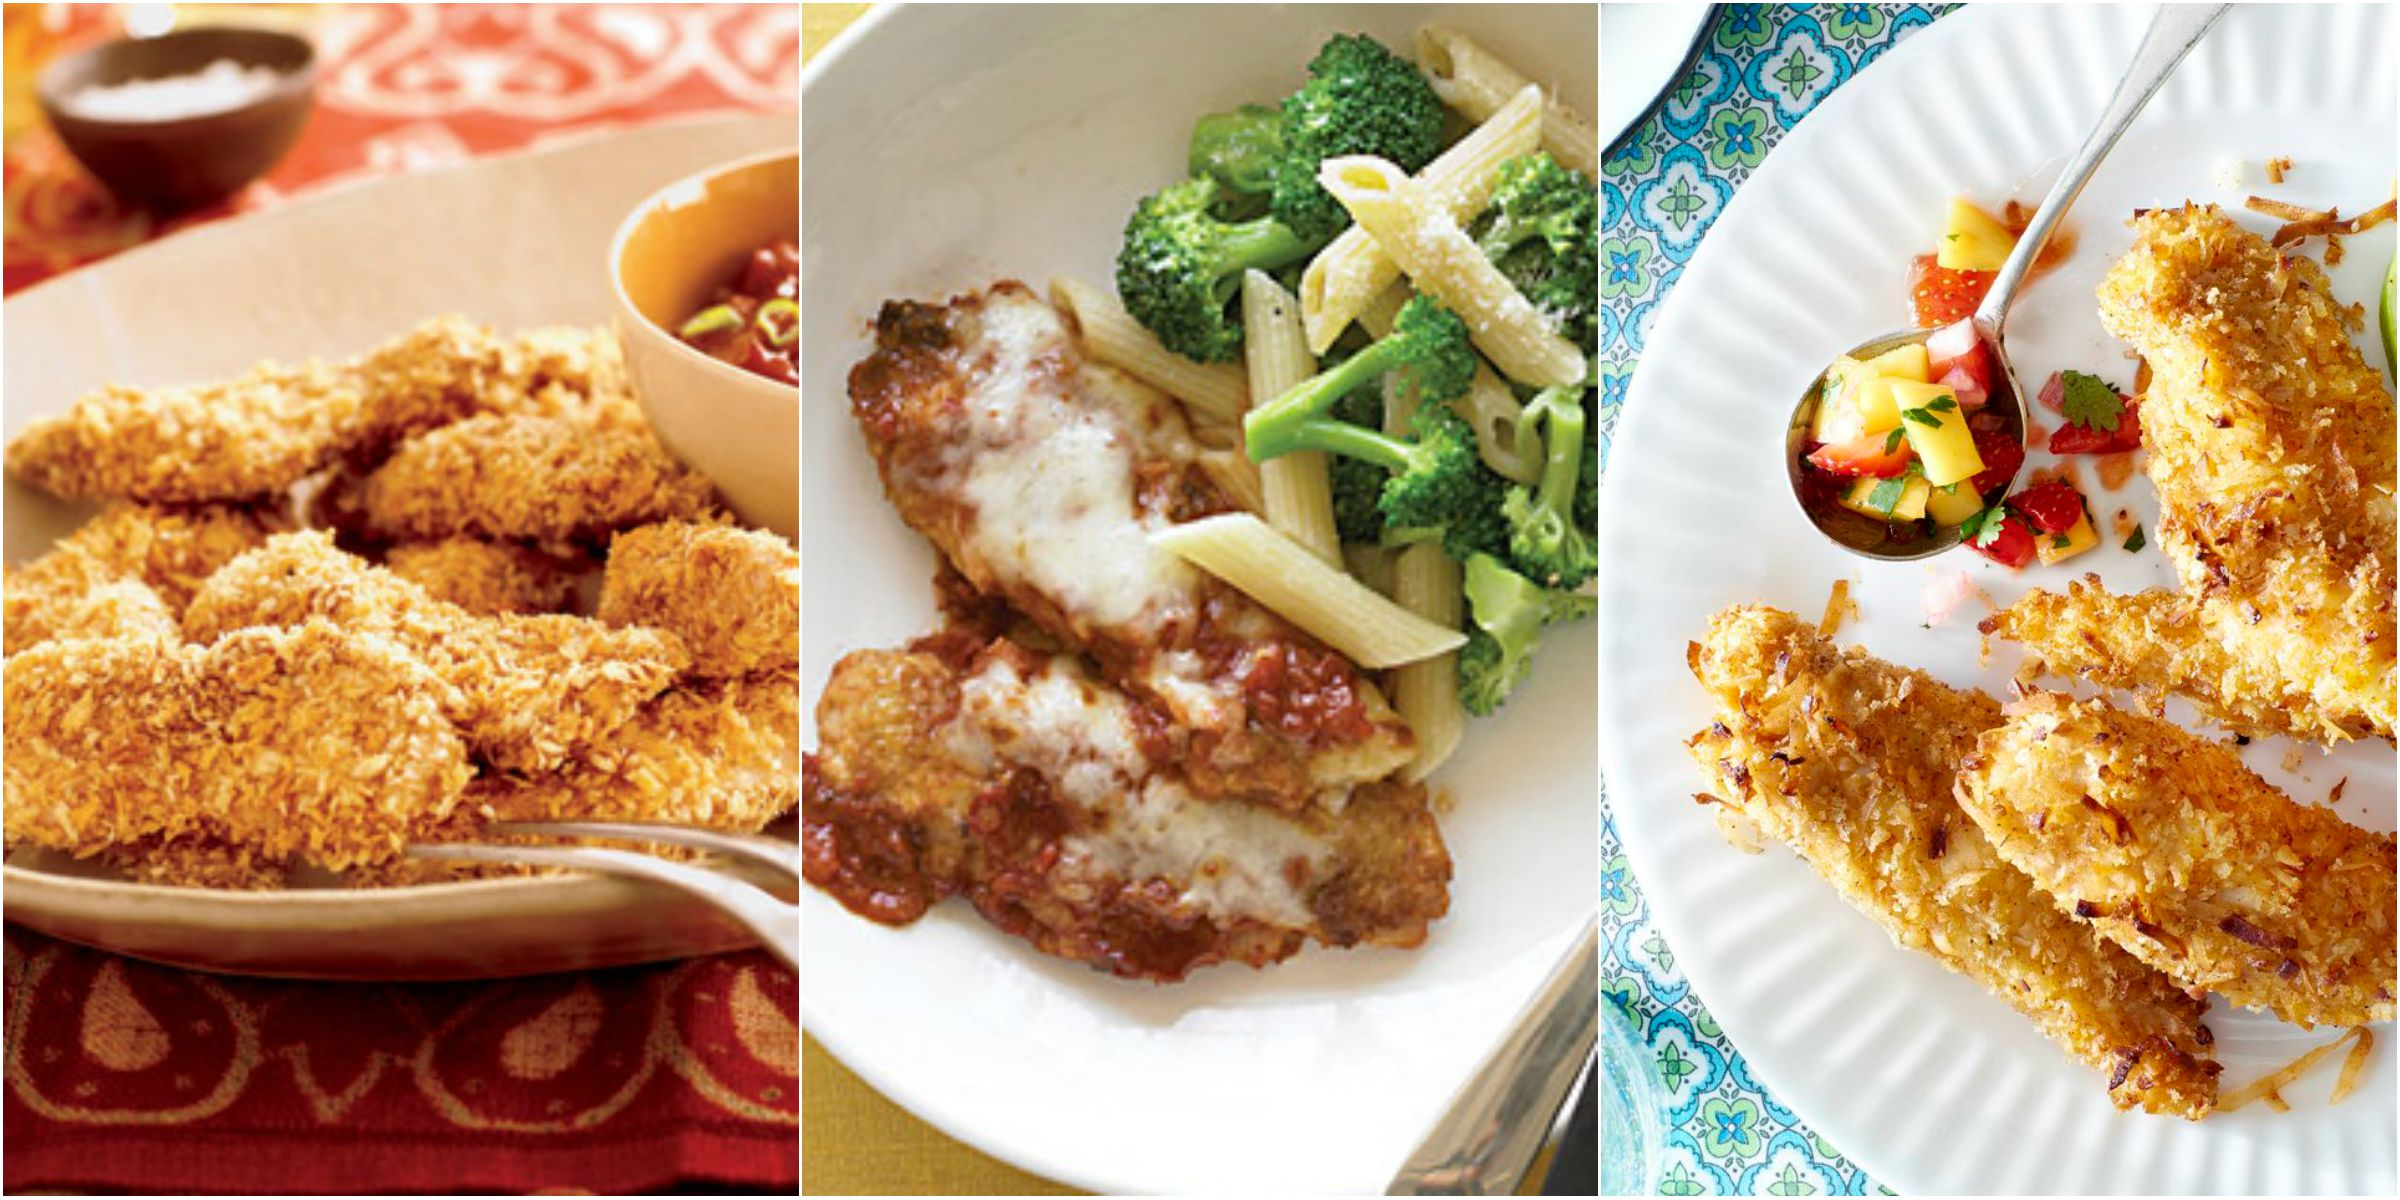 Chicken Tenders Recipes Looking for chicken tenders recipes? Allrecipes has more than 50 trusted chicken tenders recipes complete with ratings, reviews and tips.